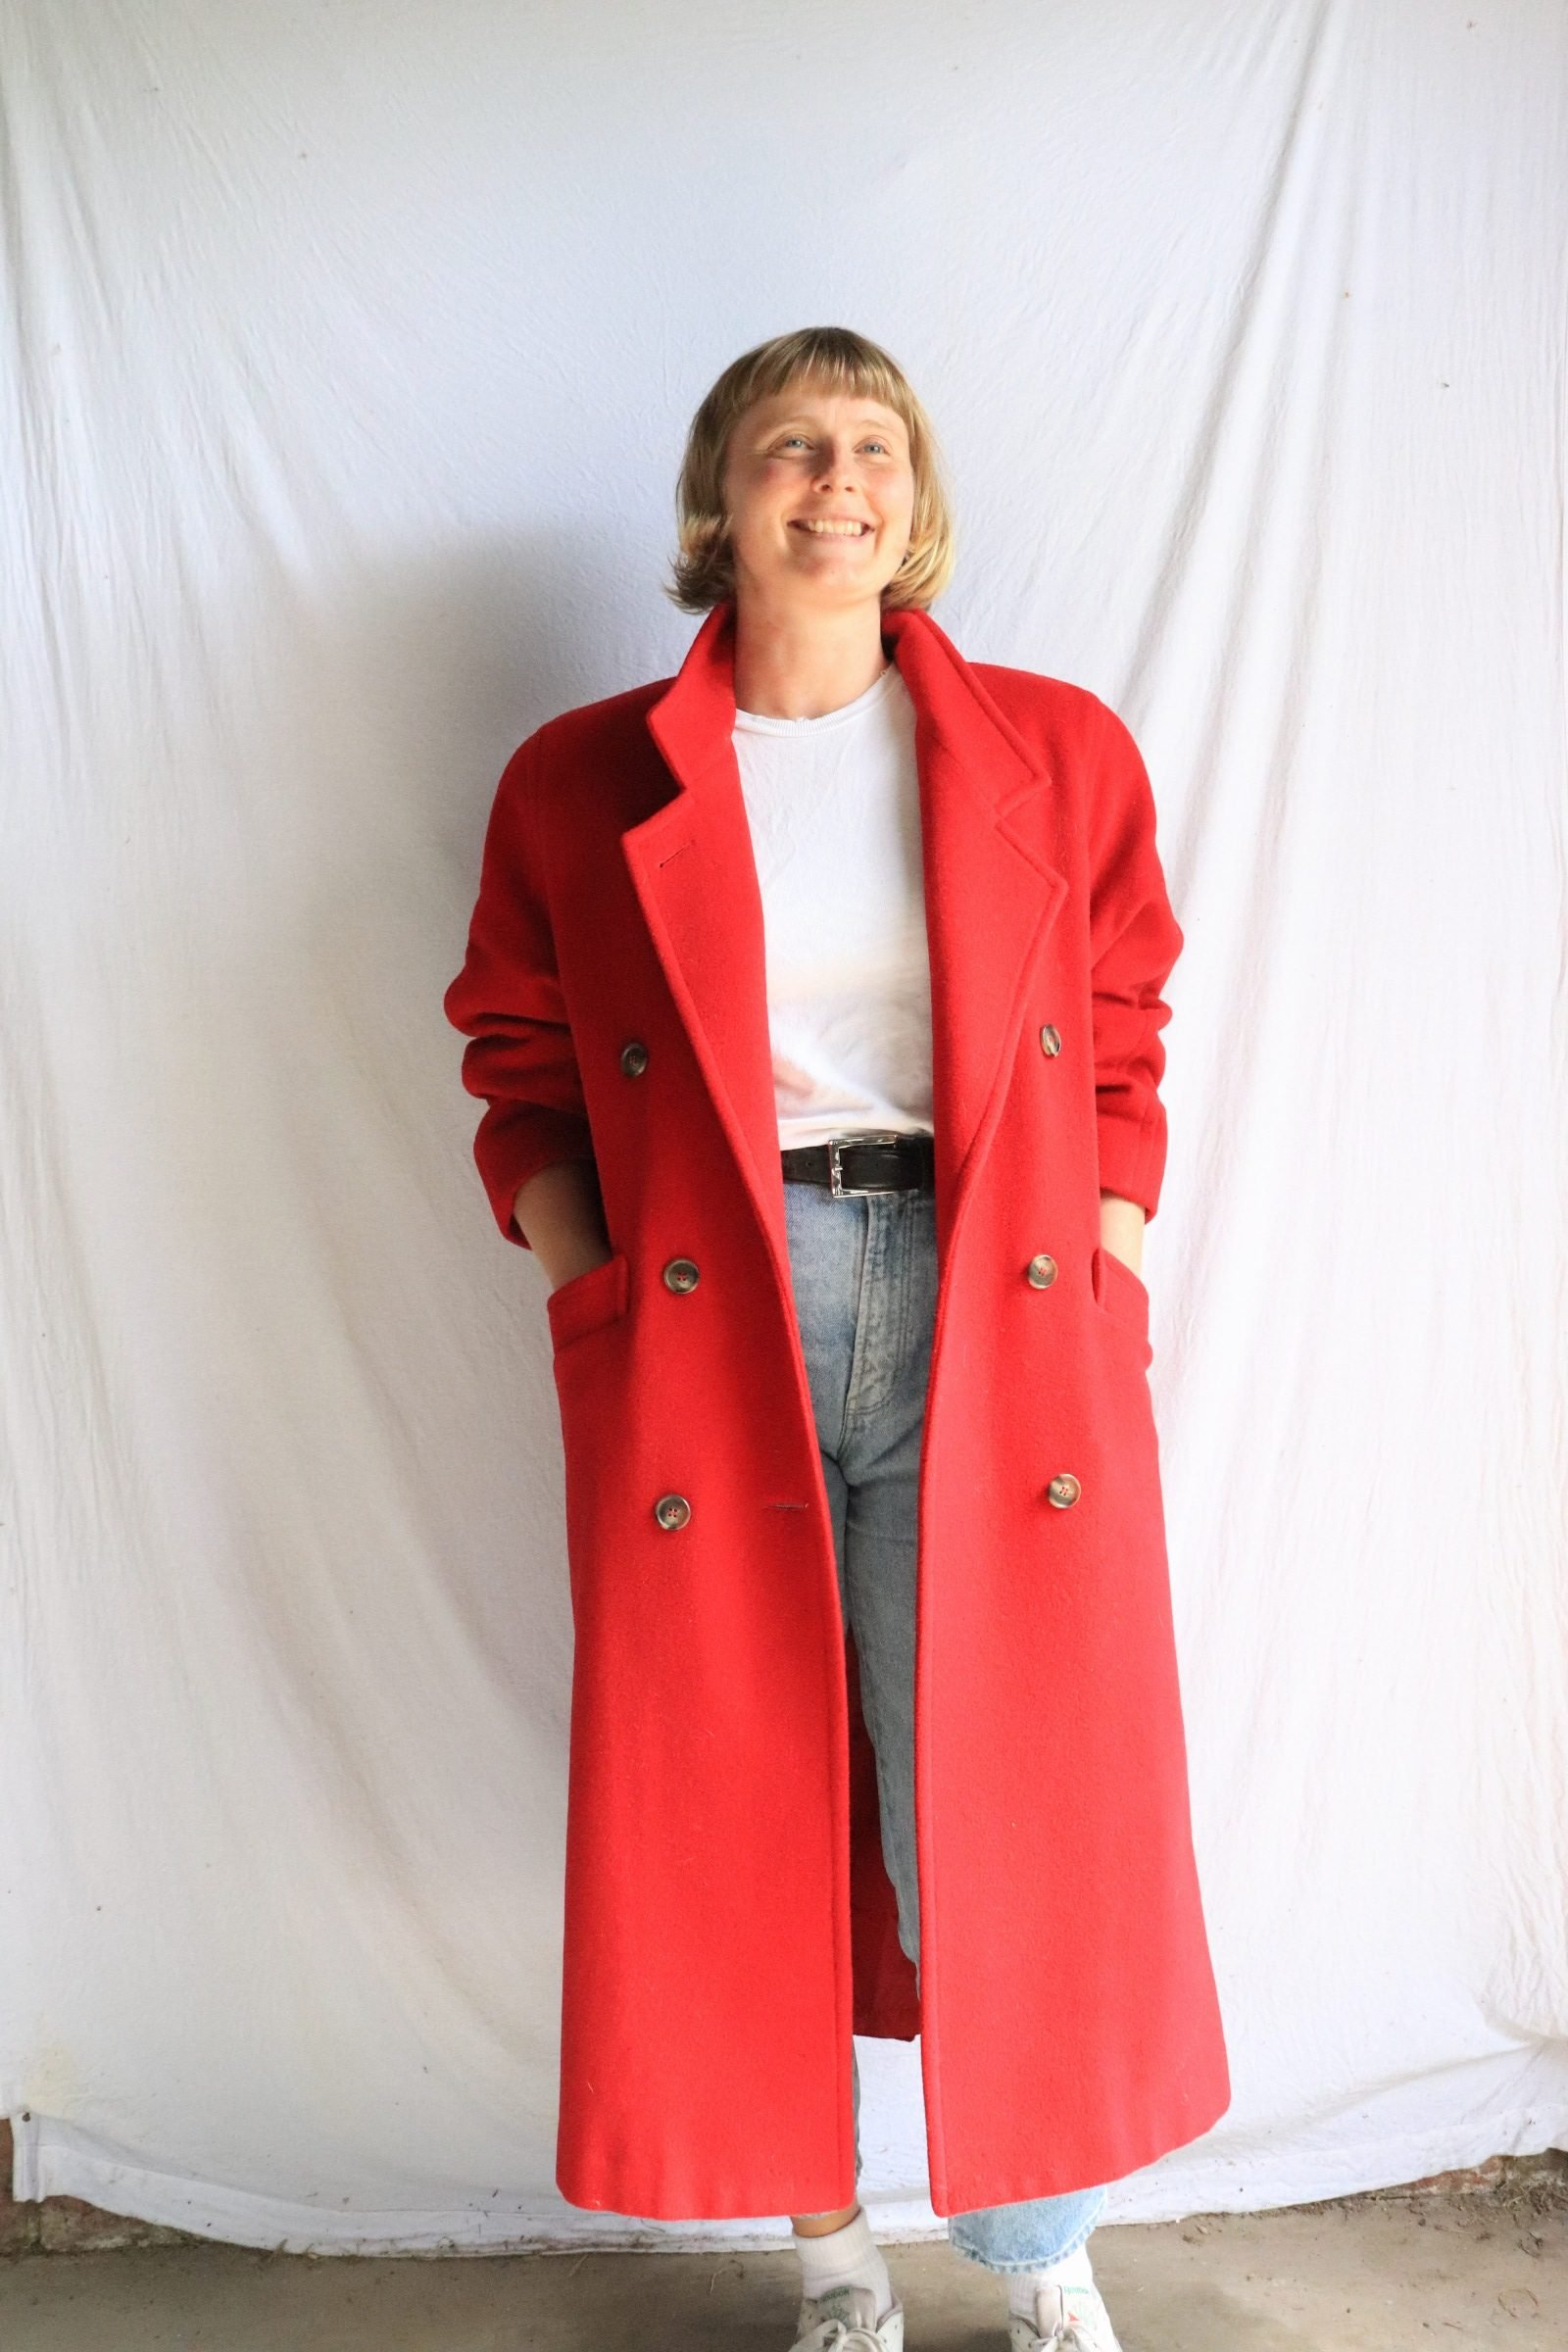 80s/early 90s red long wool coat